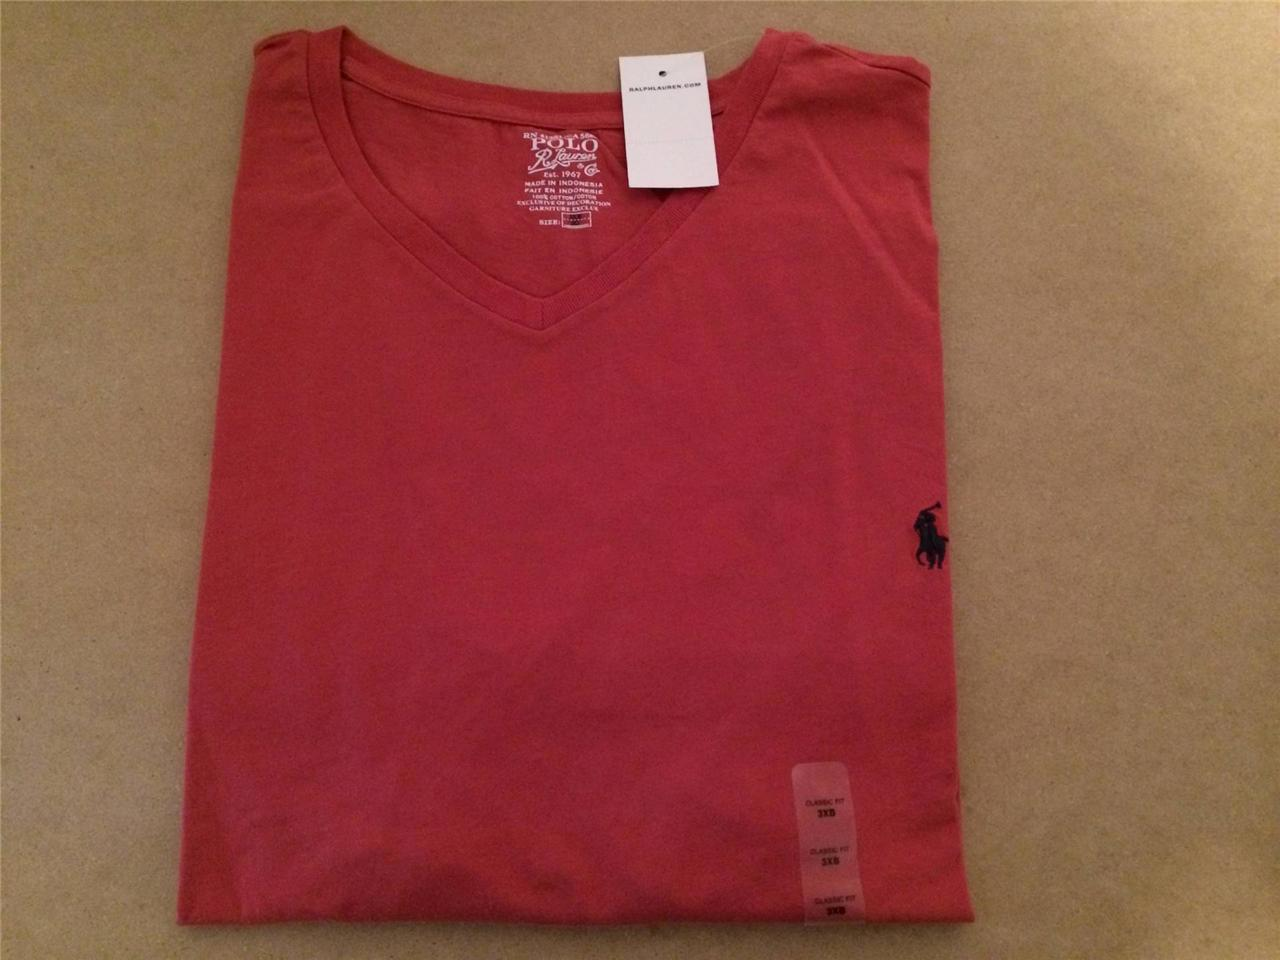 New polo ralph lauren classic big and tall v neck t shirt for Big and tall polo t shirts